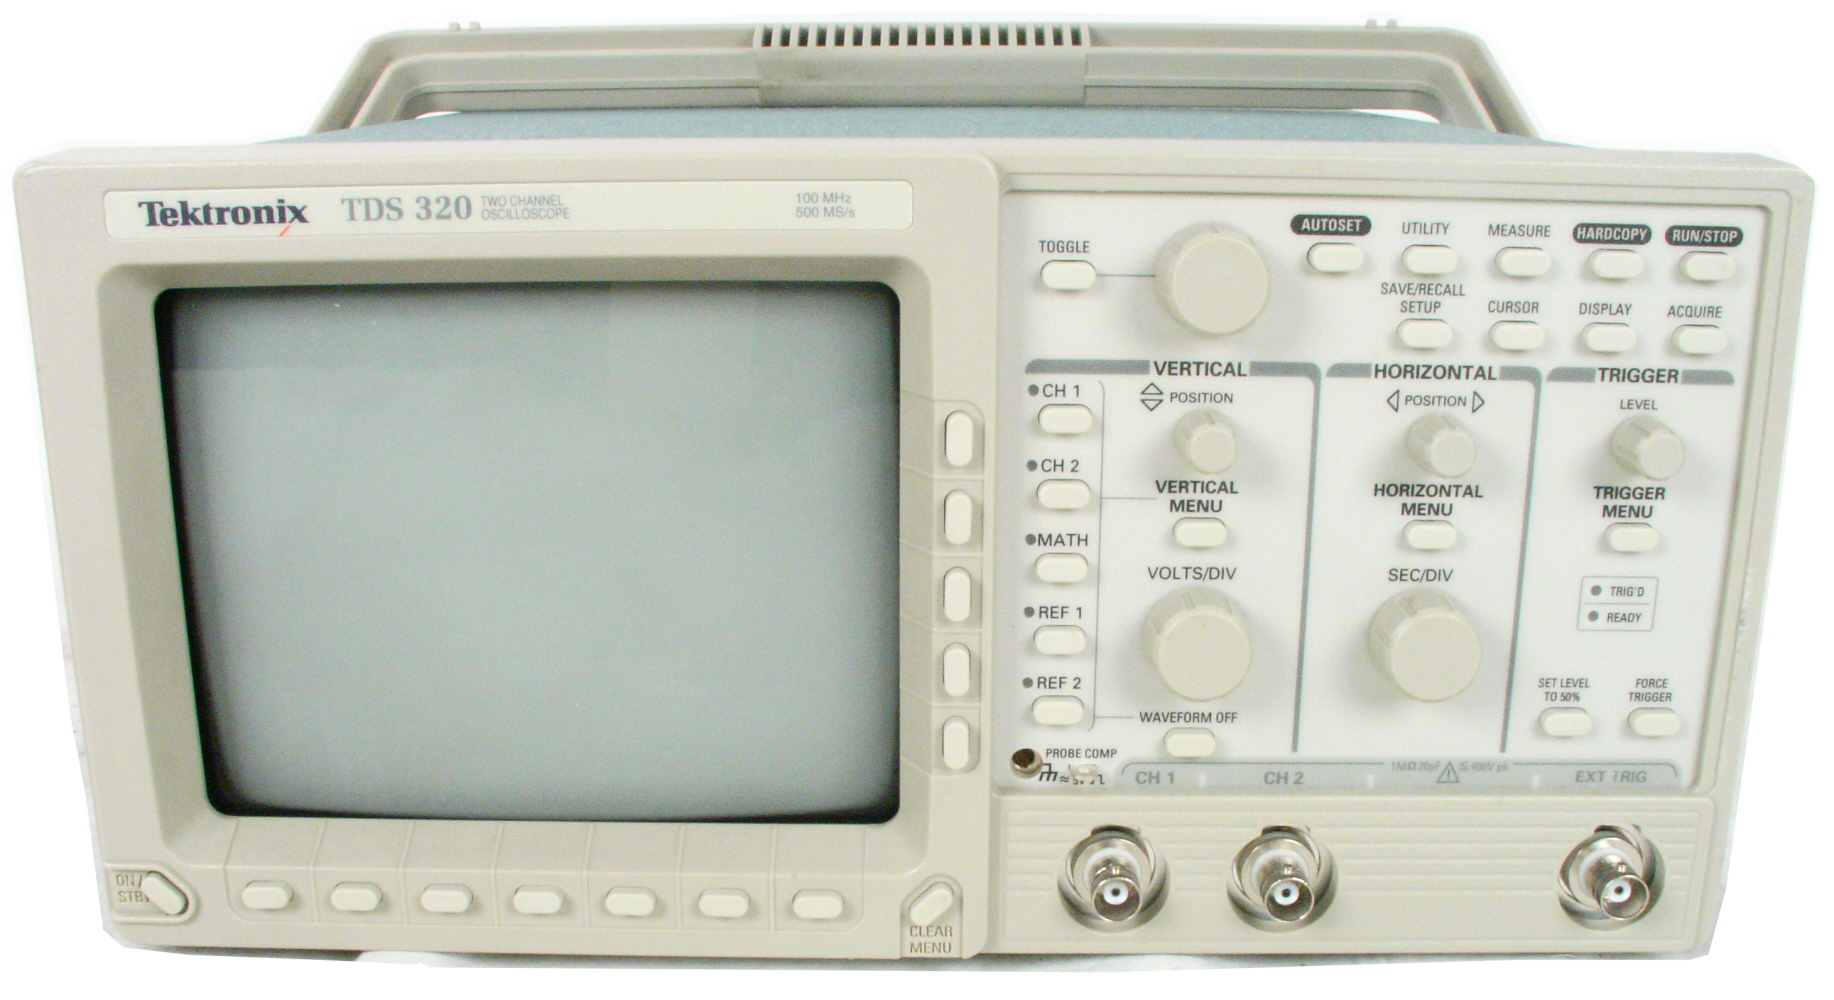 Tektronix TDS320 for sale